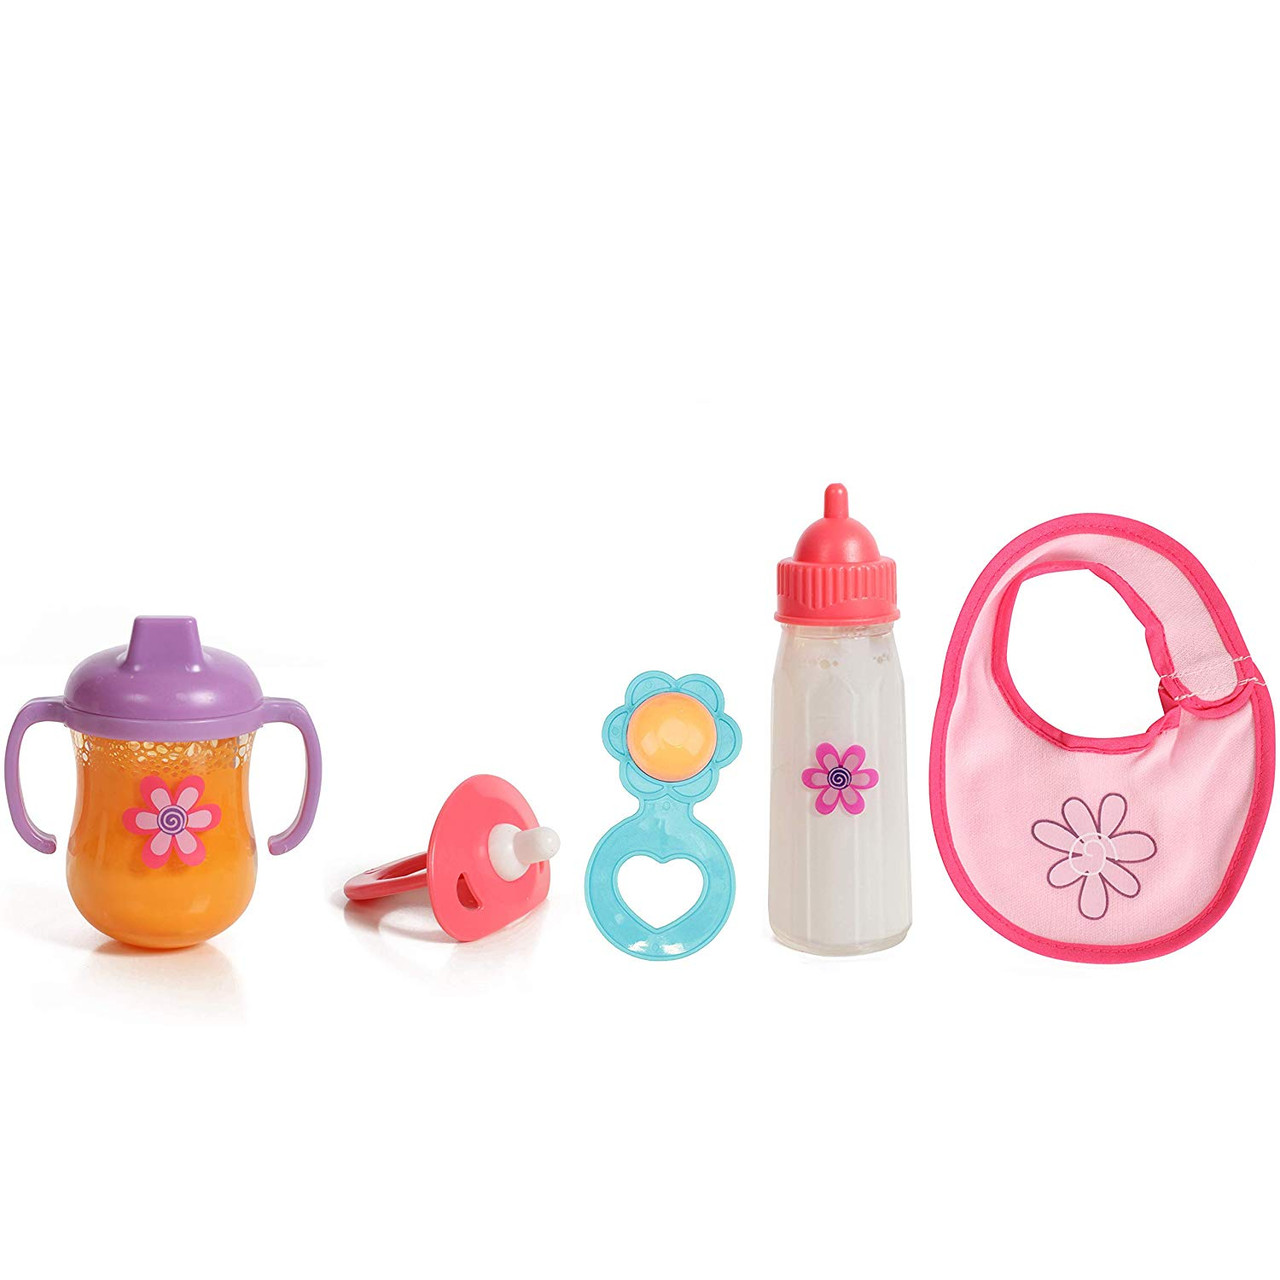 White Youngy Baby Dolls Feeding Bottle Magic Bottle Set Disappearing Milk Pretend Play Toy